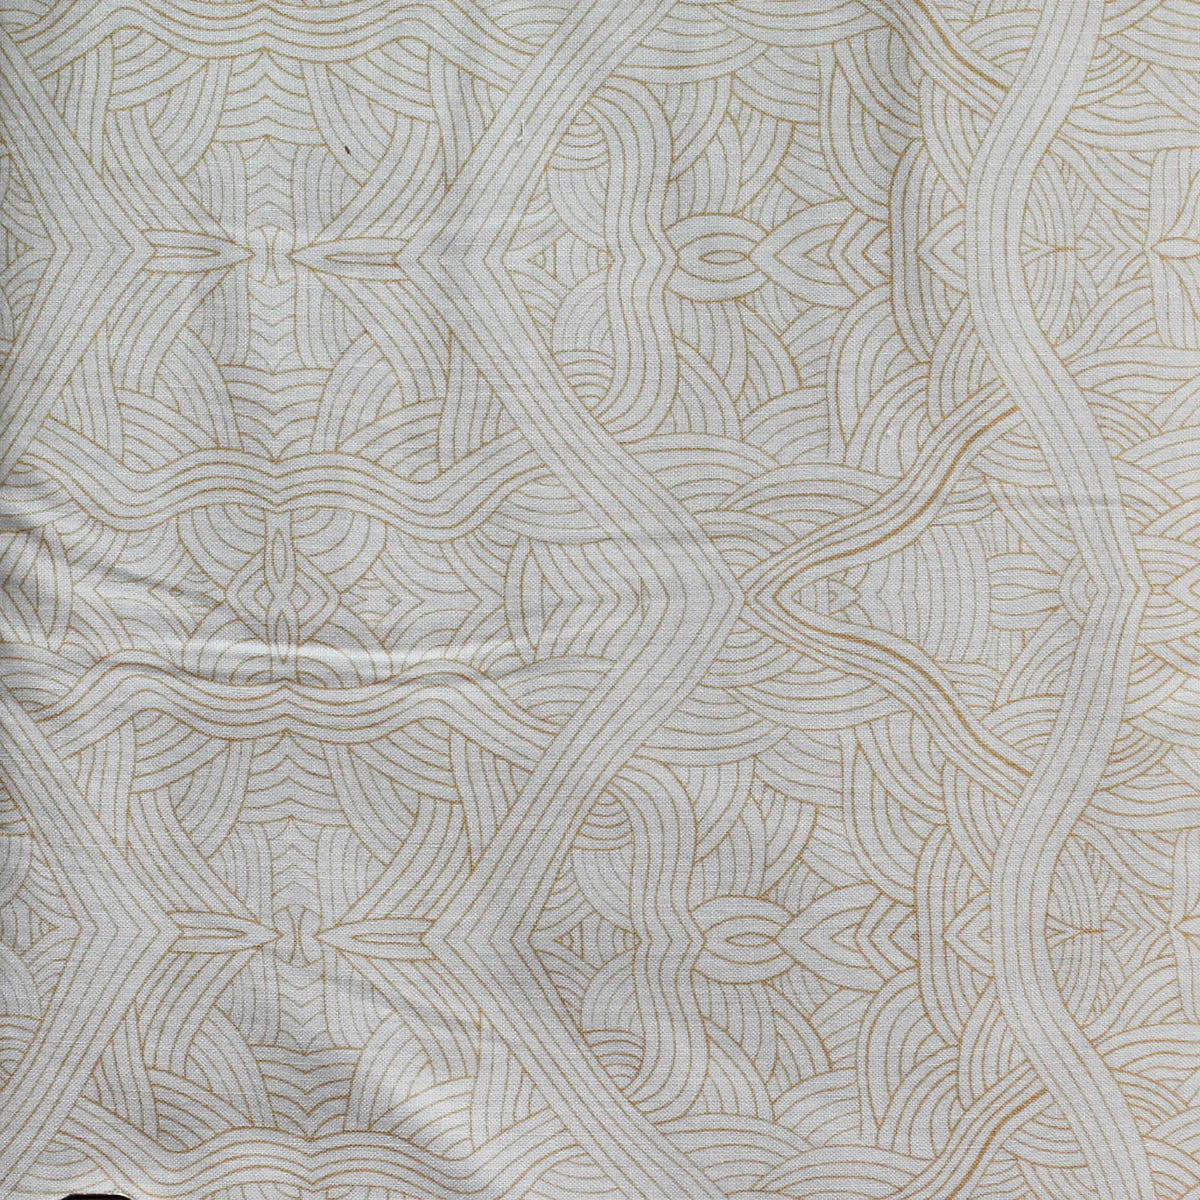 UNTITLED NEUTRAL by Aboriginal Artist NAMBOOKA